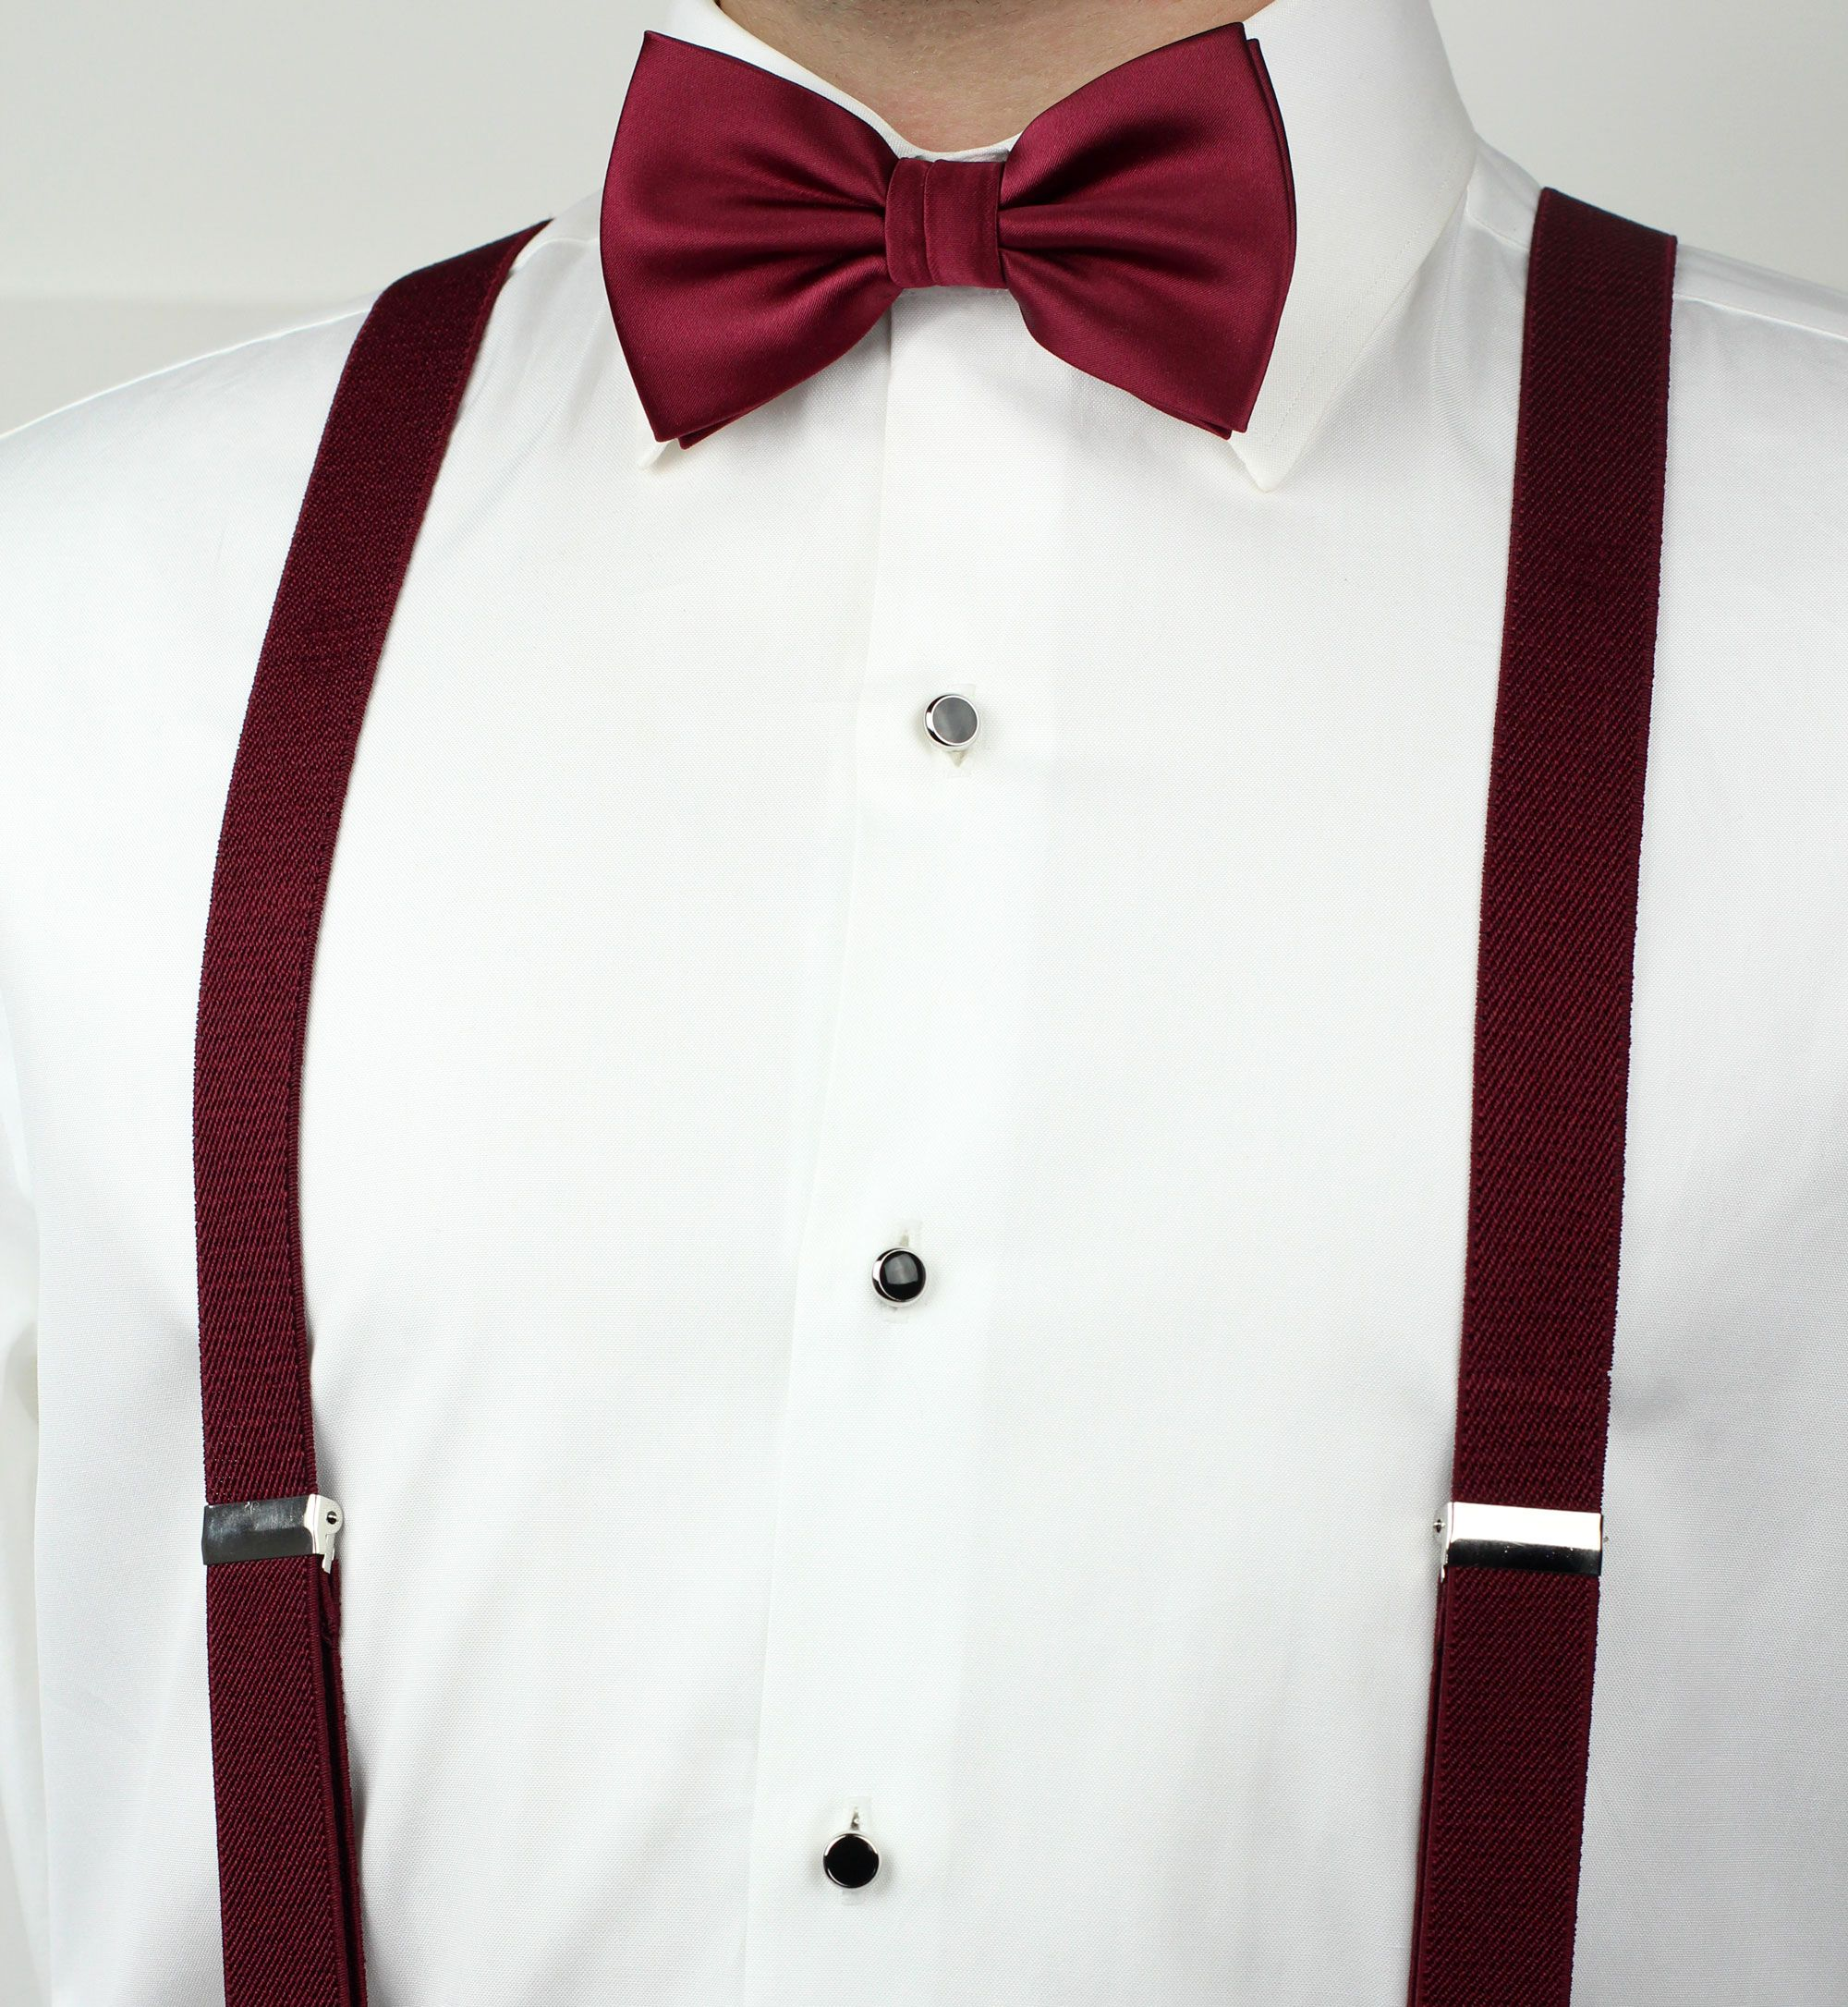 by Bow Tie House Slim Suspenders in 4 sizes Y-back Shape 2 cm in 5 colors